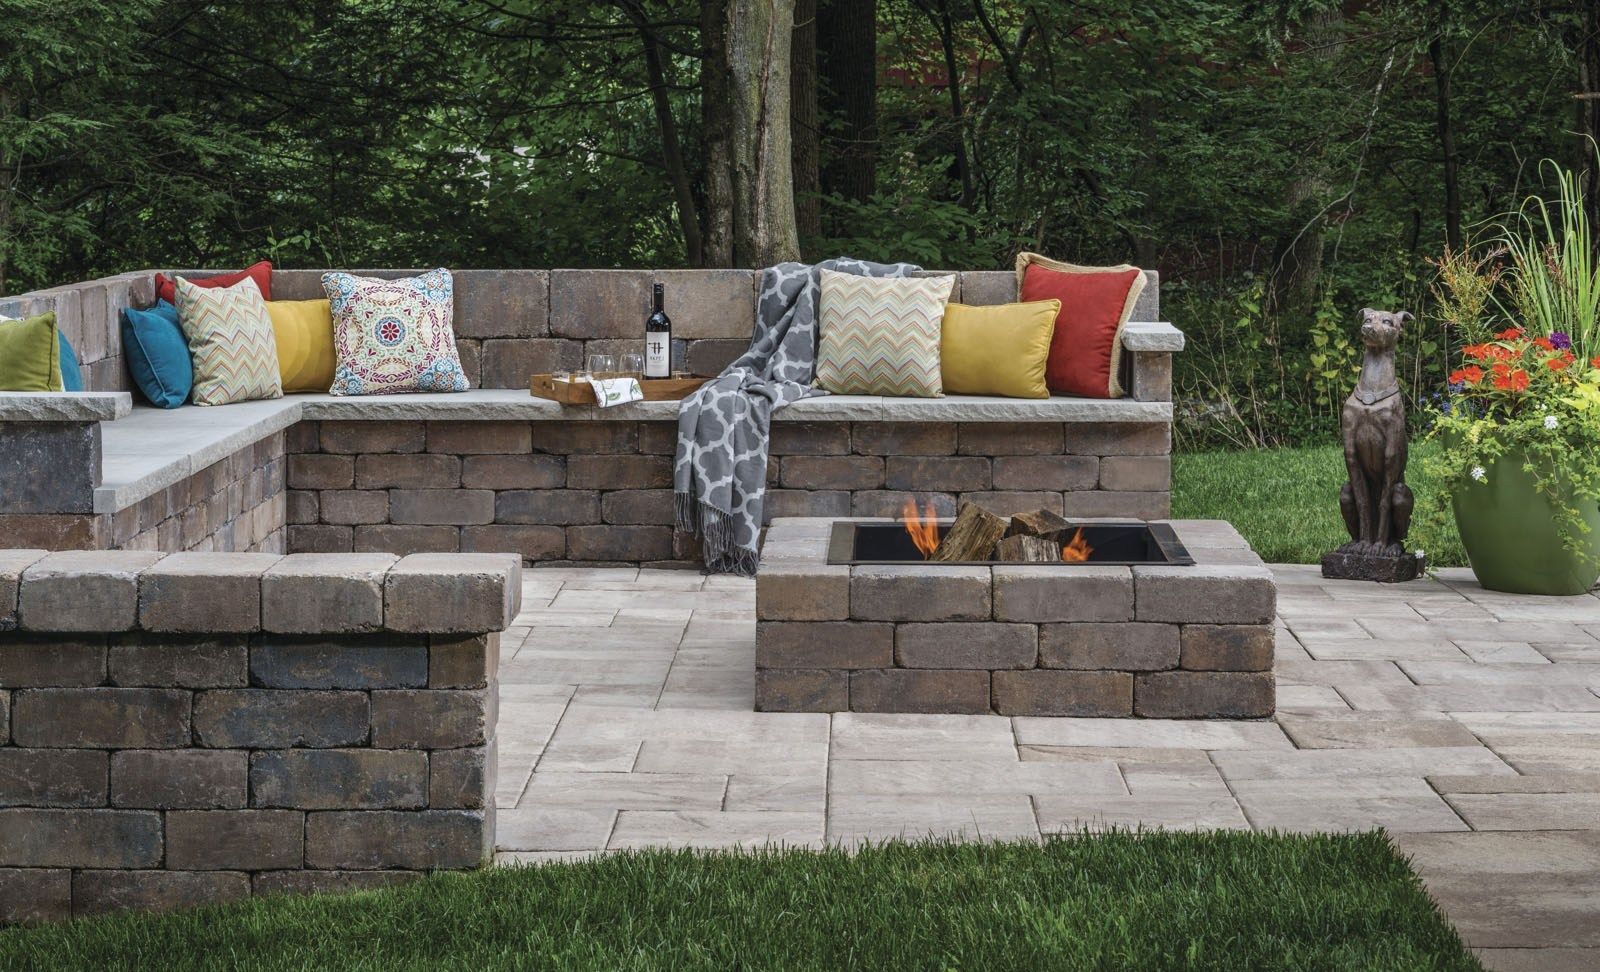 Seat Wall Design Patio Seating Walls Fire Pit Ideas From Belgard Outdoor Fire Pit Seating Wall Seating Fire Pit Seating